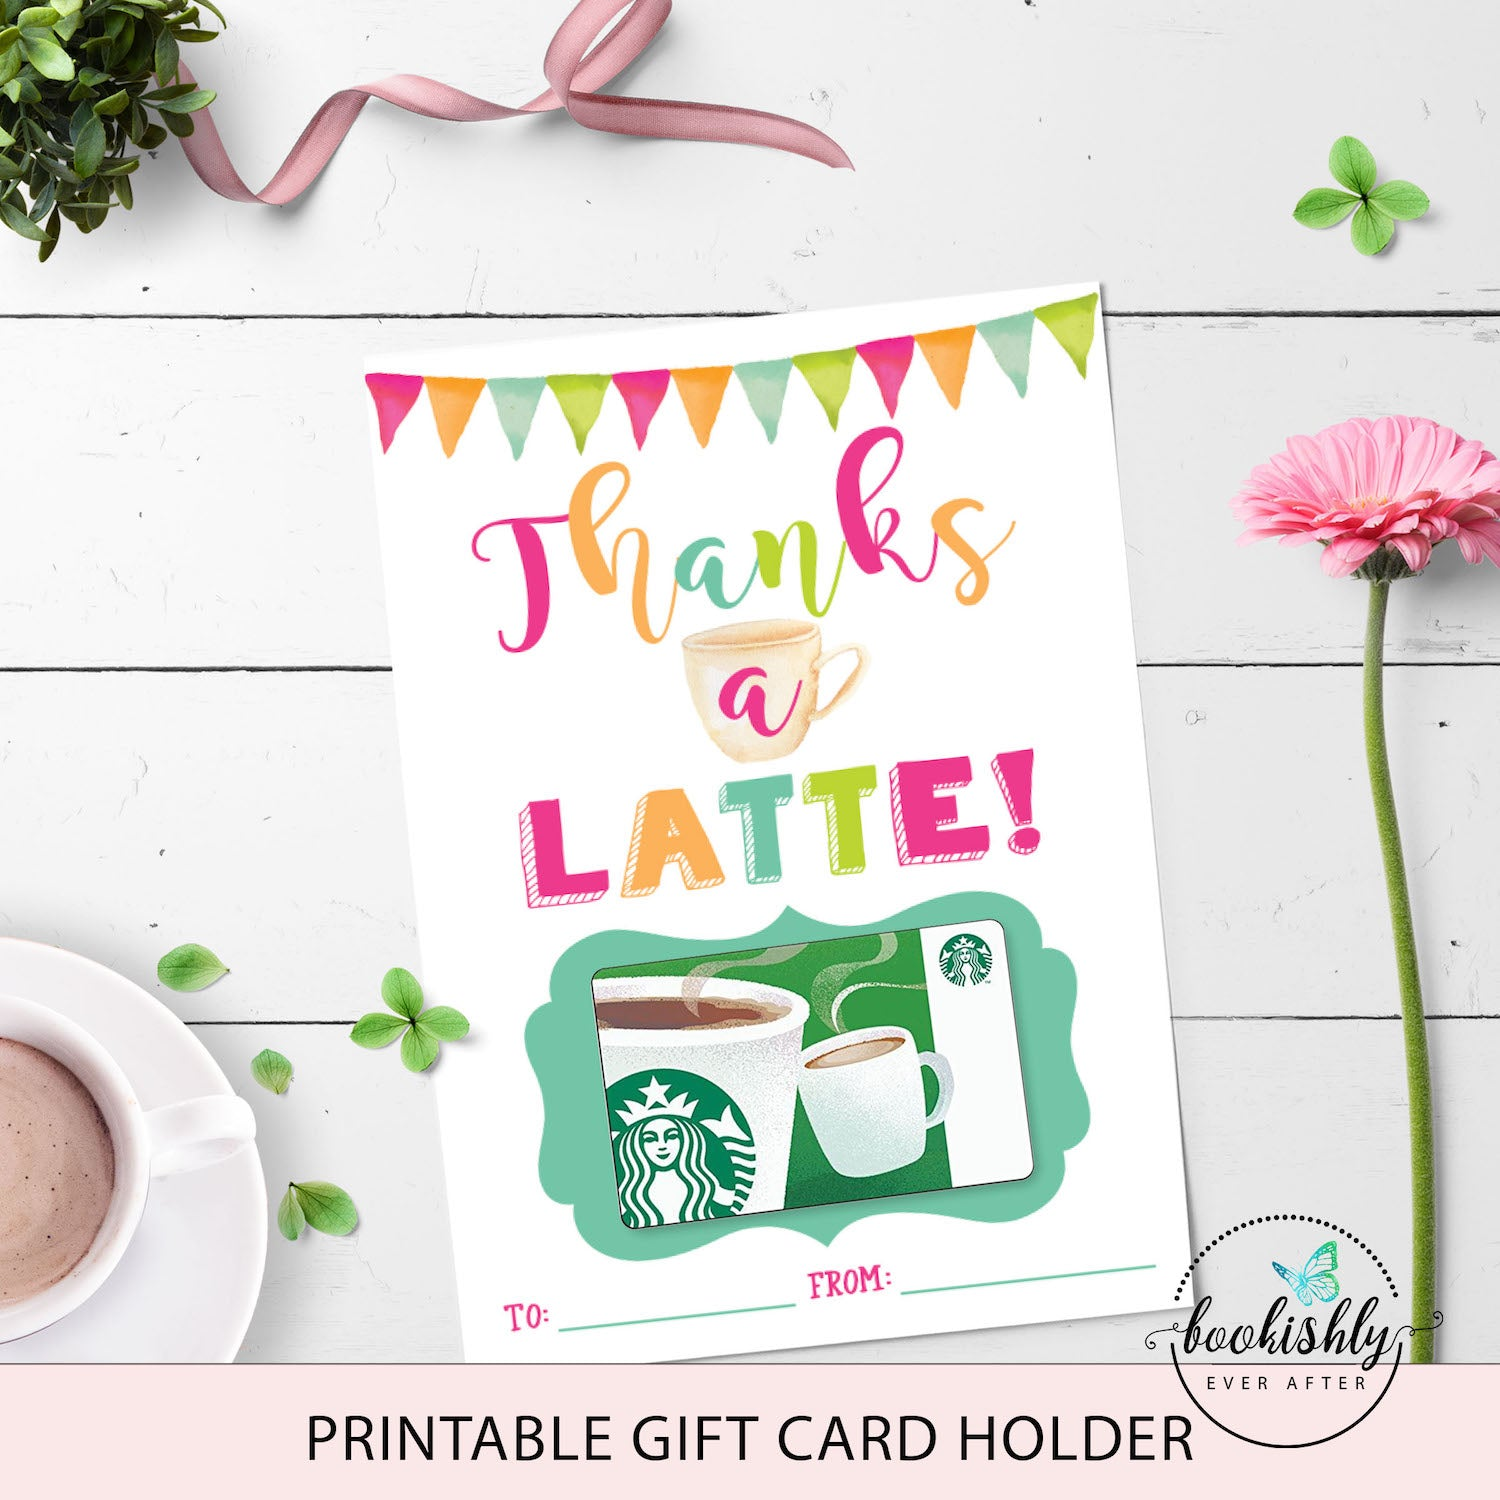 image about Thanks a Latte Printable Tag identify Instructor Present Card Holder Printable, Due a Latte Starbucks